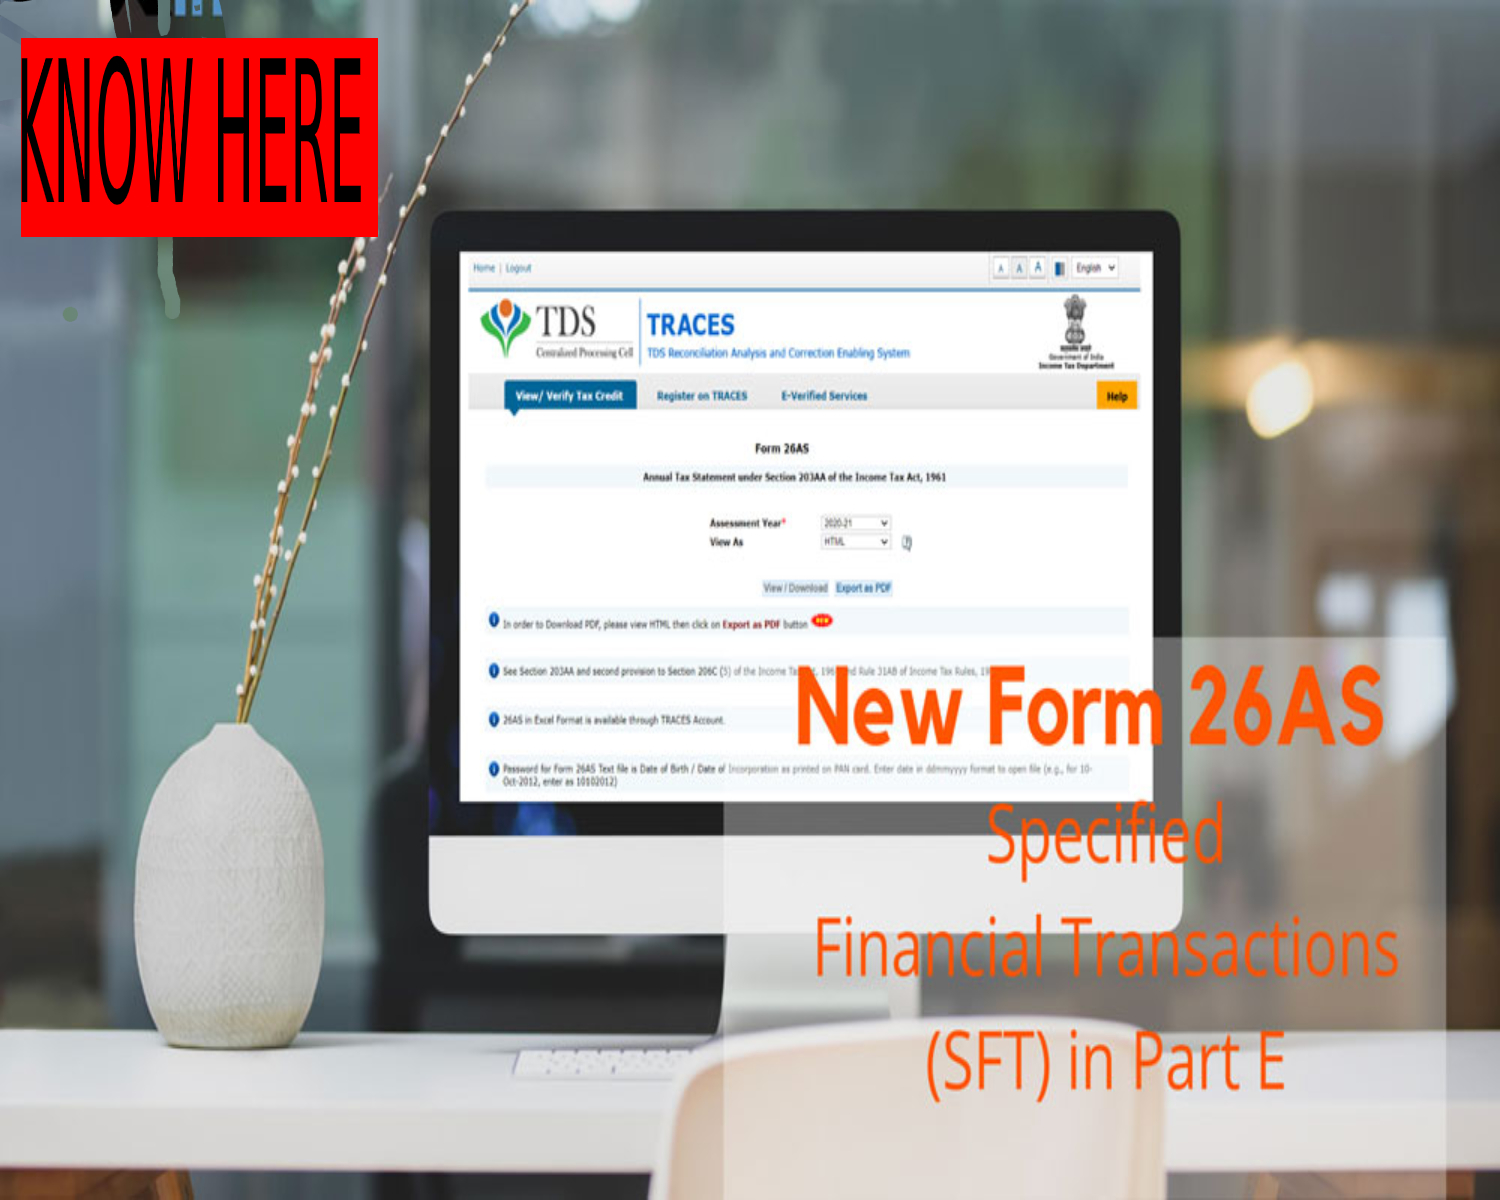 New Form 26AS to Show Specified Financial Transactions (SFT) in Part E